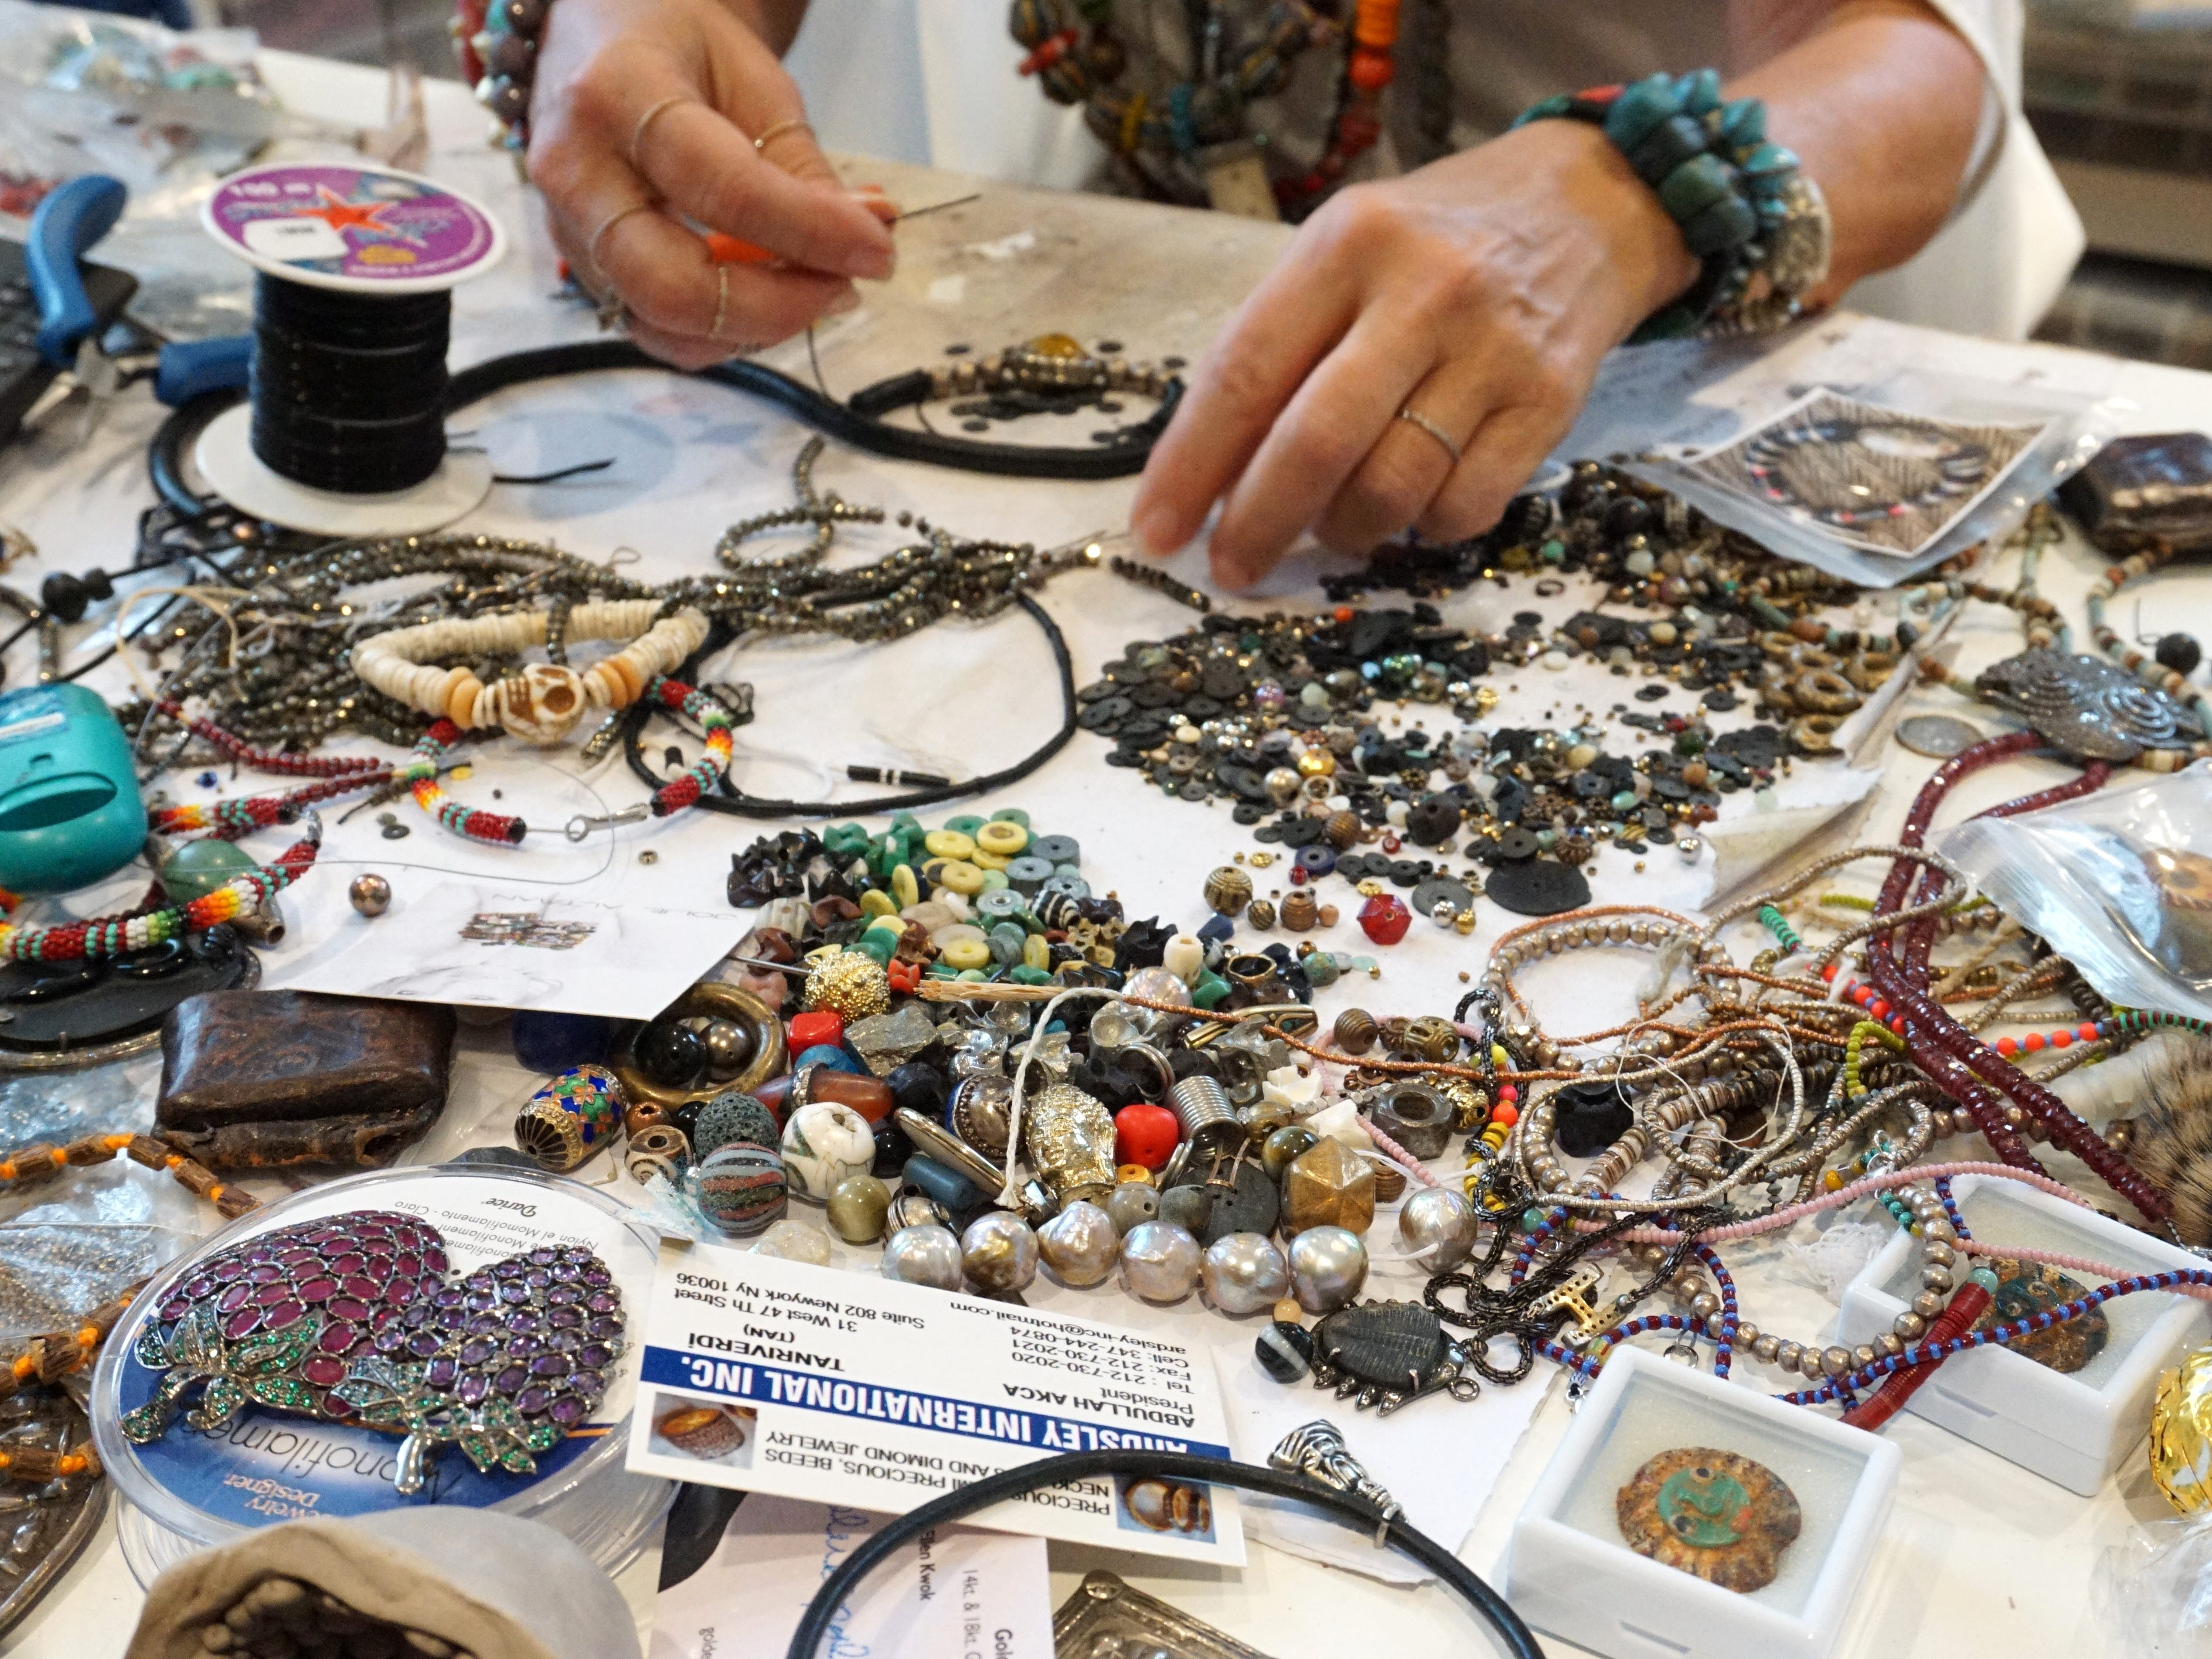 Altman's Birmingham office is busy with lots of beads and stones and other objects that she makes into bracelets and necklaces.